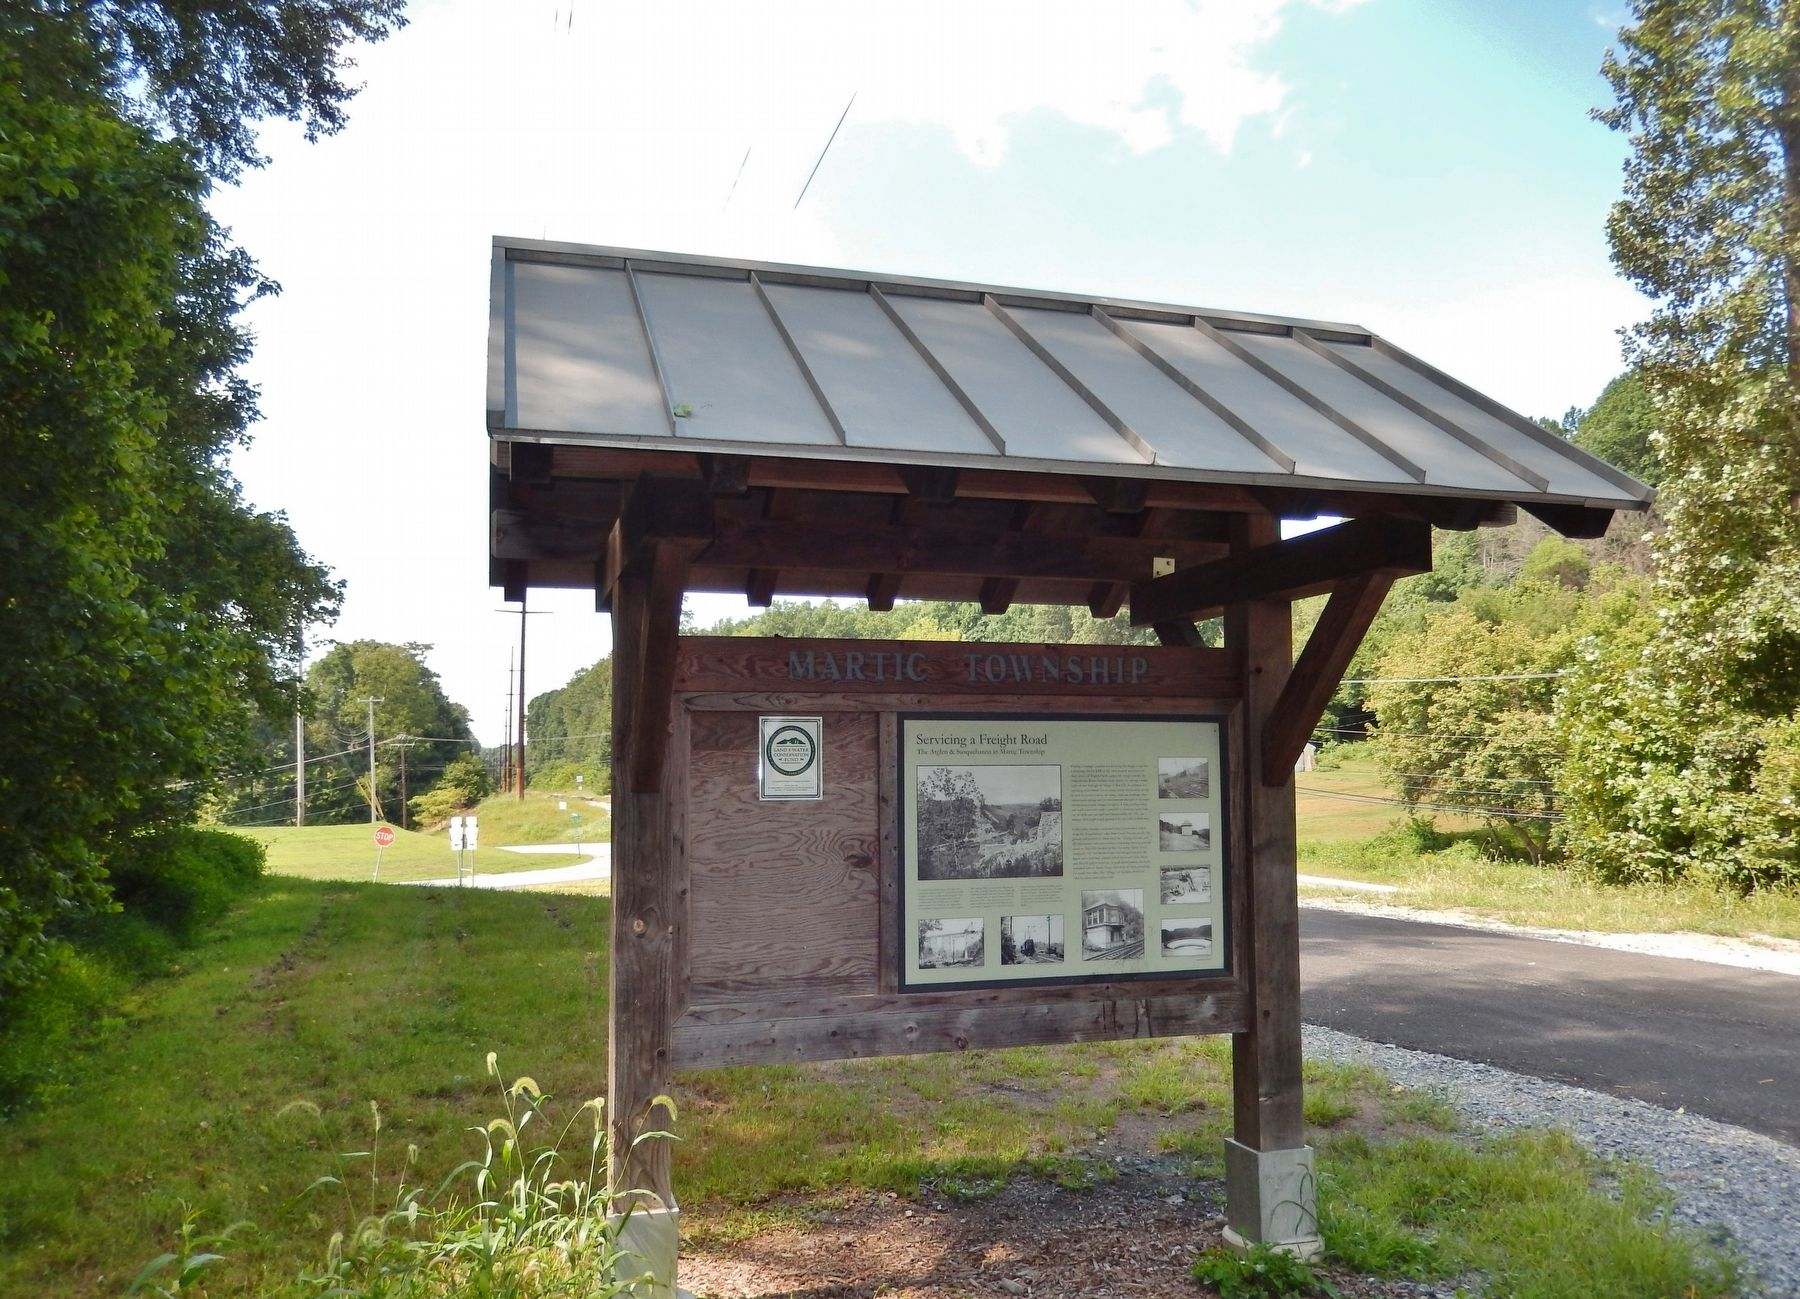 Servicing a Freight Road Marker & Kiosk (<i>wide view looking west; Marticville Road behind</i>) image. Click for full size.